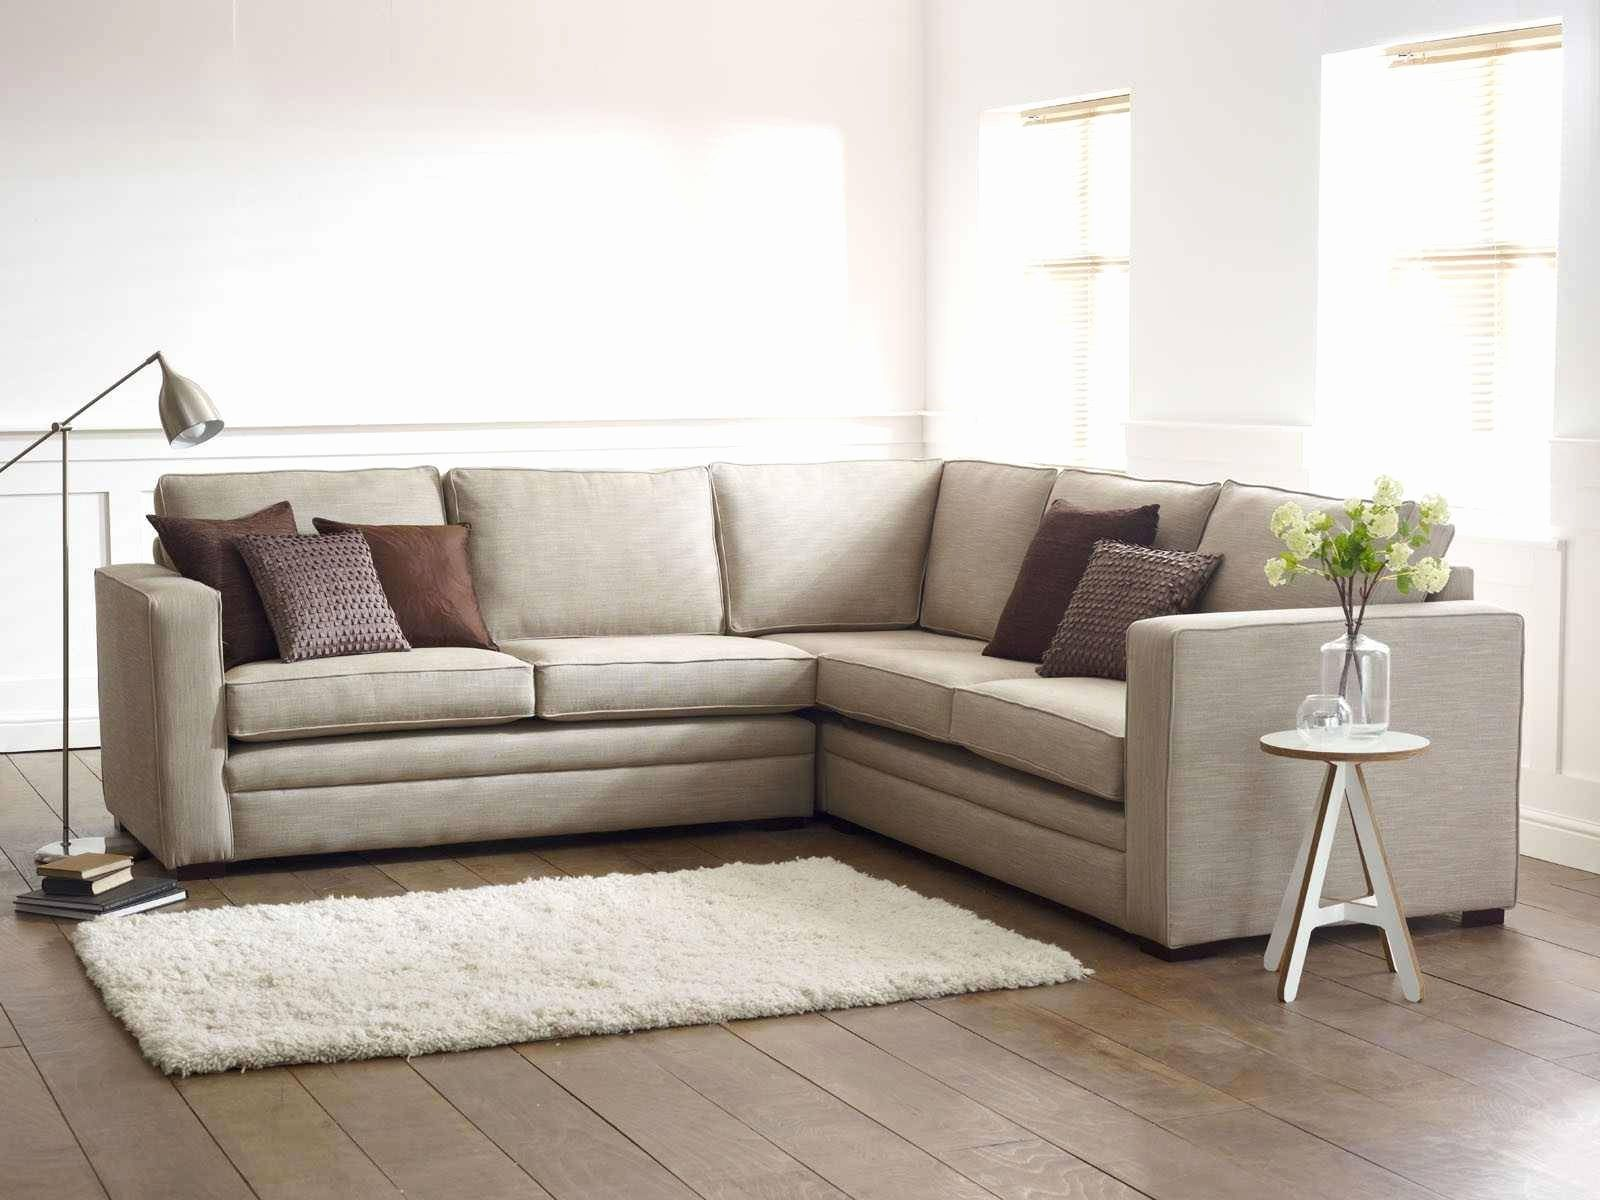 Luxury Small Modern Sectional Sofas Photographs Small Modern Sectional Sofas Fresh 2018 Best Of Small L Shaped Sofa